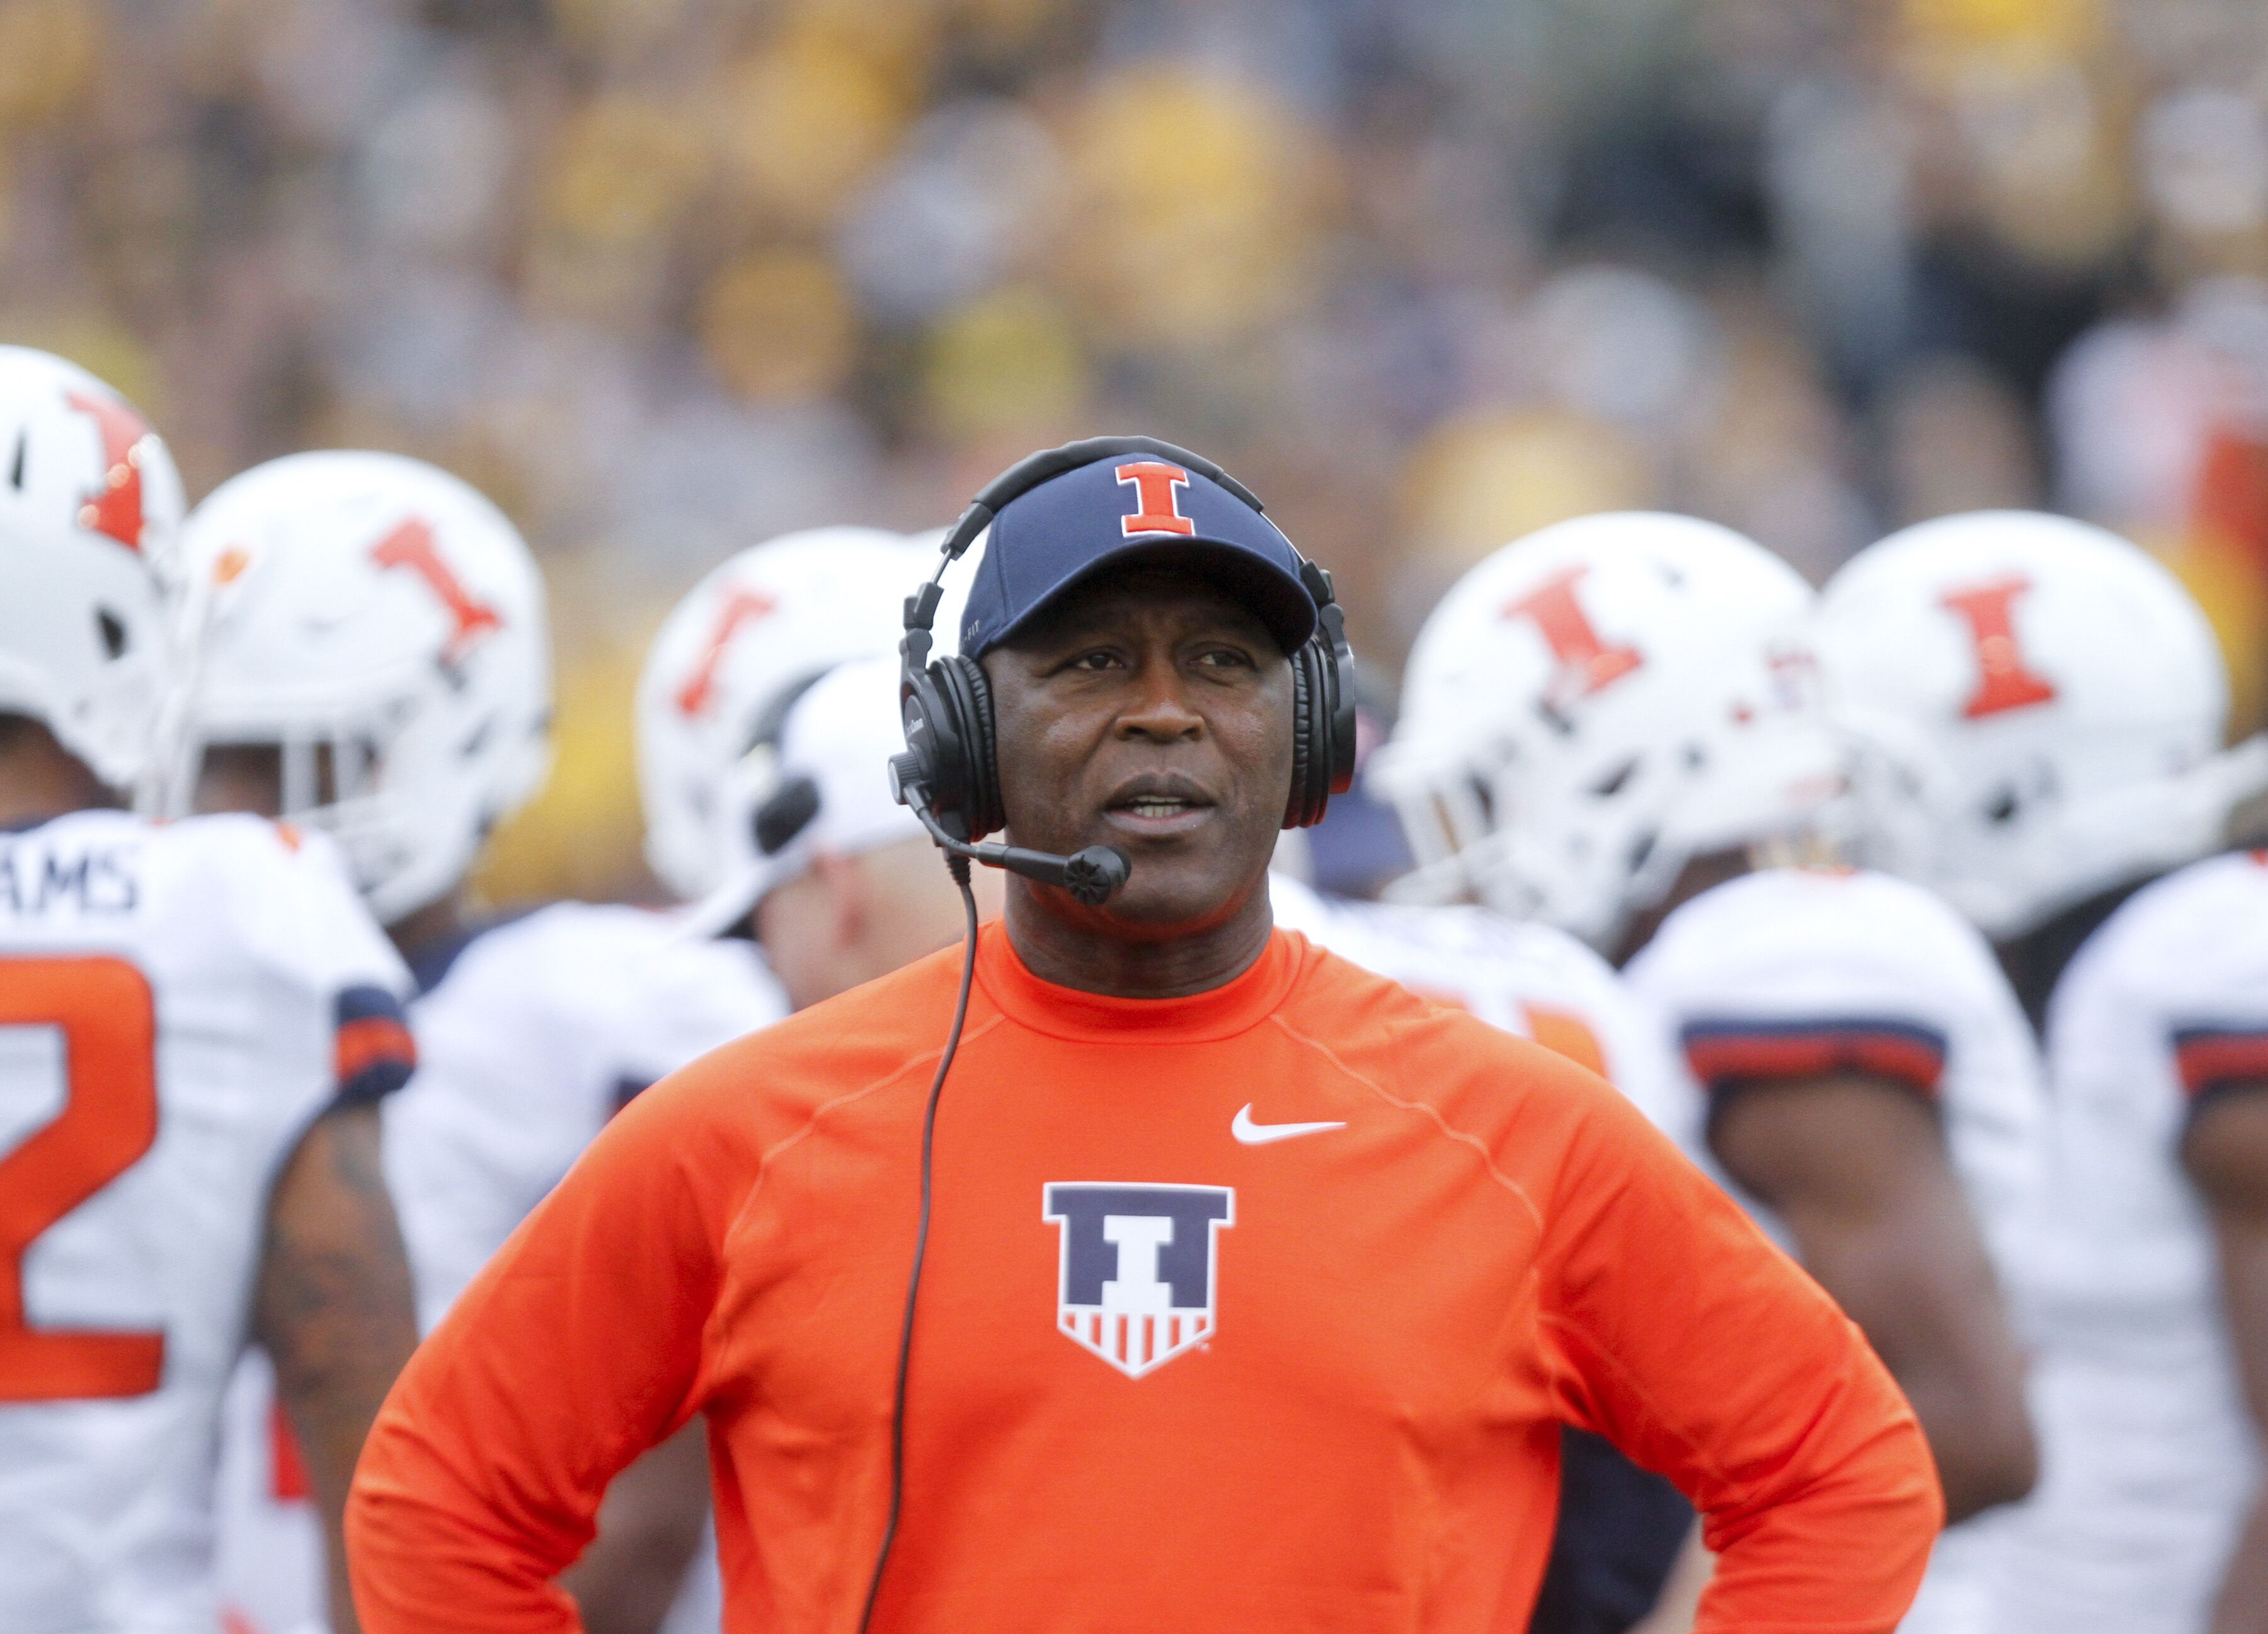 Illinois Football: Early Illini projected depth chart for 2018 - Page 10